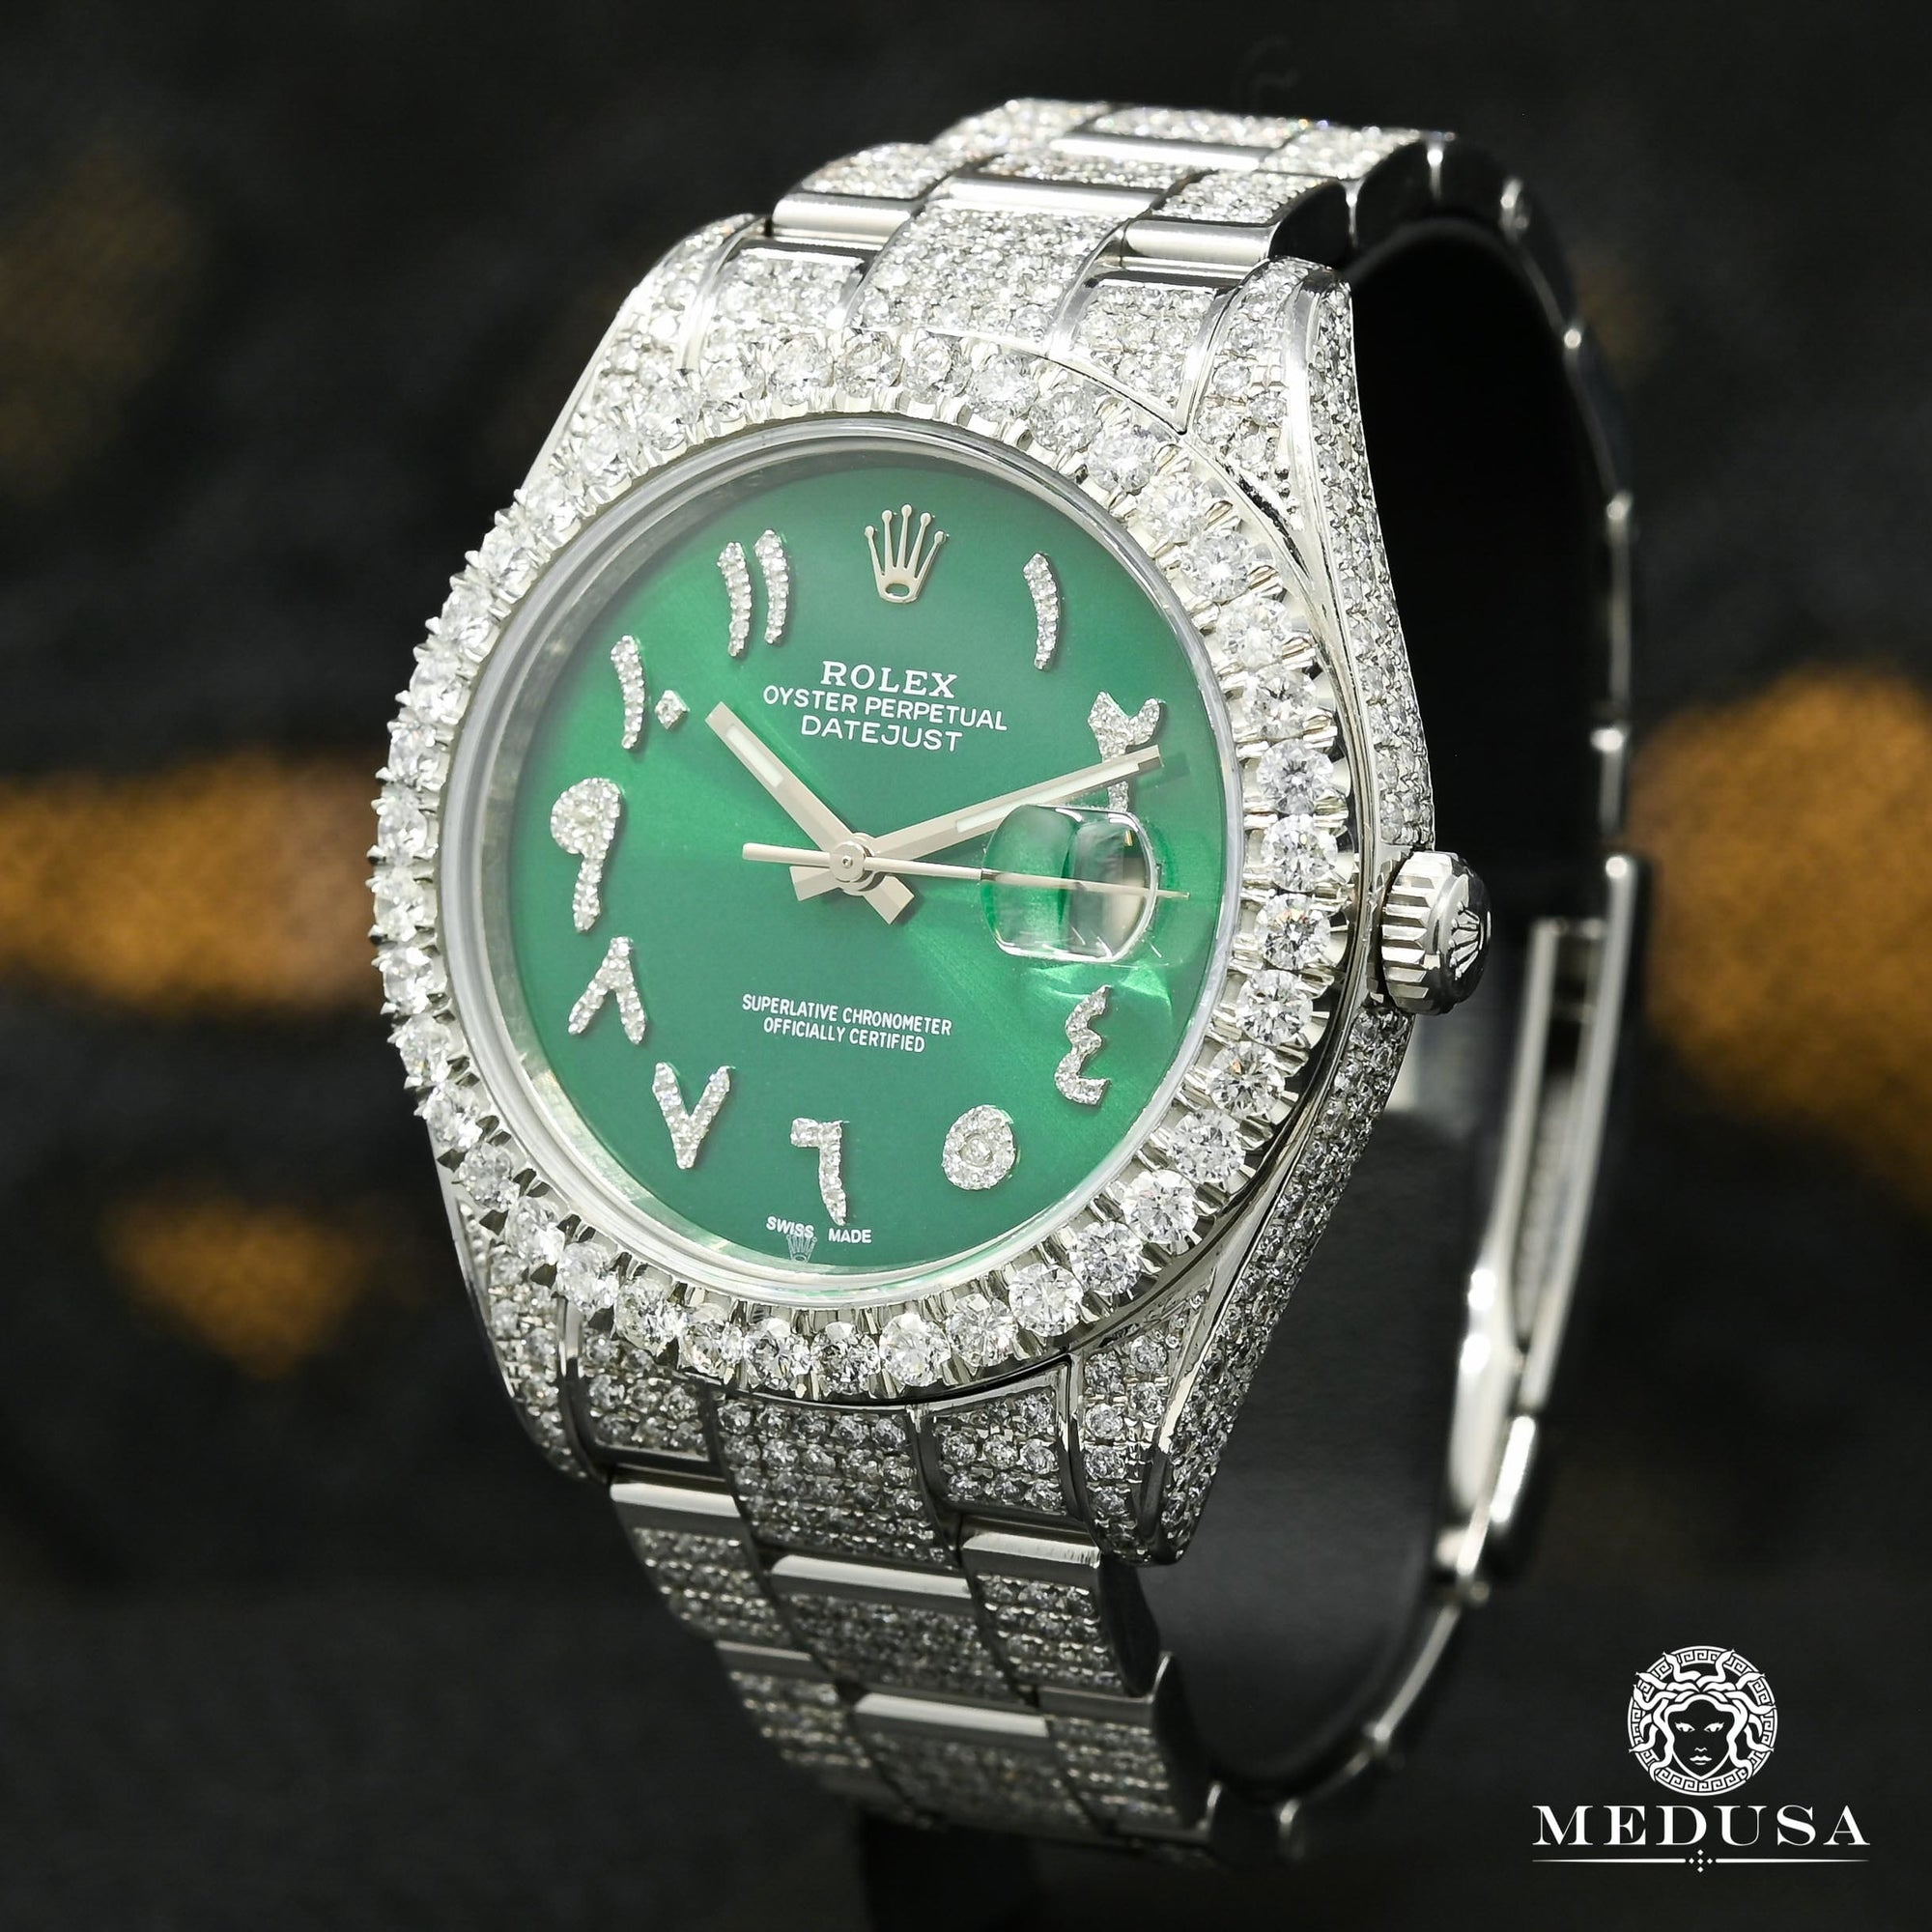 Rolex Datejust 41mm - Green Arabic Full Iced